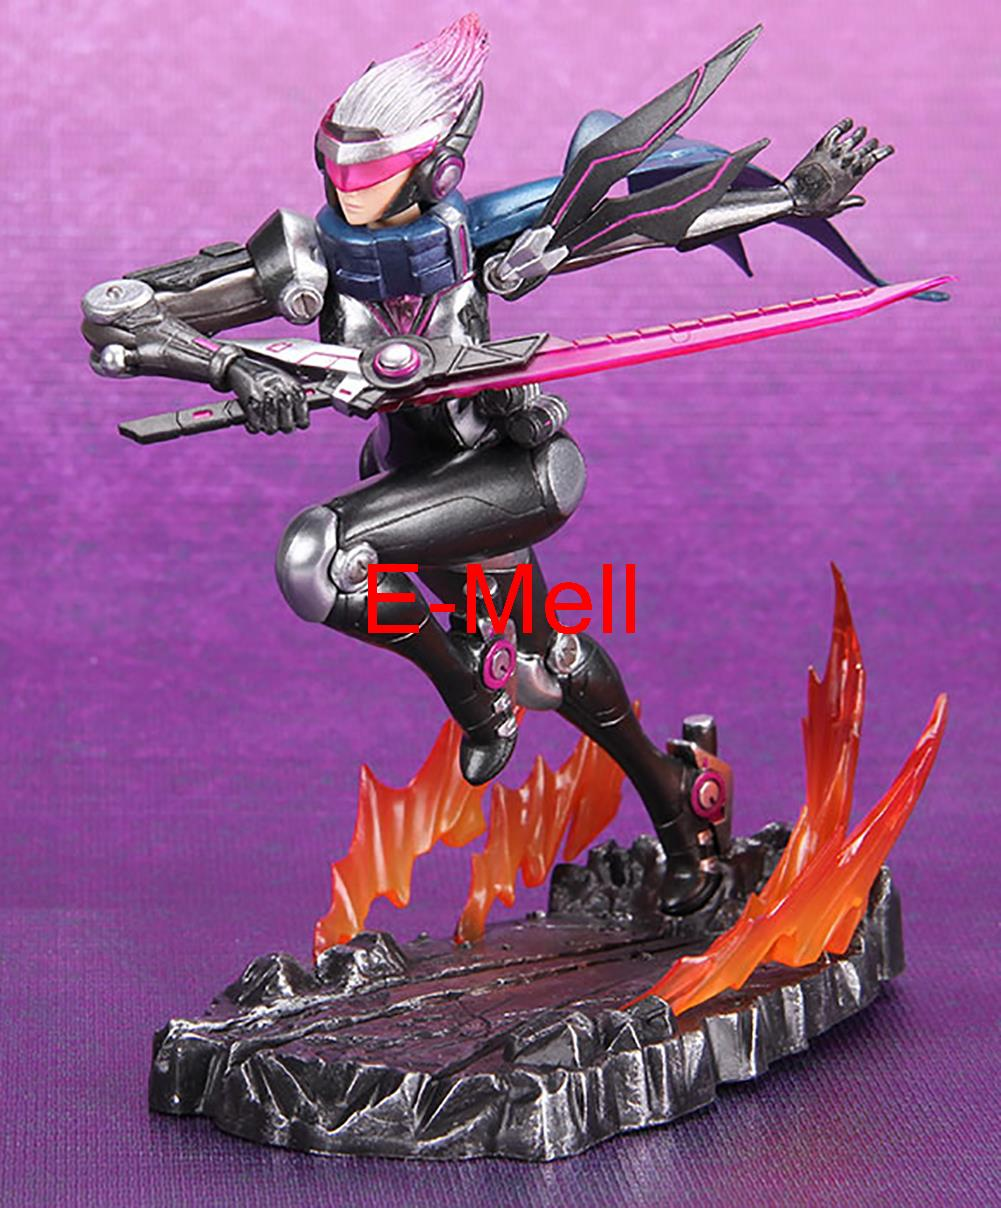 Cosplay 16cm/6.3'' LOL Grand Duelist Fiora PVC GK Garage Kits Action Figures Toys Model one piece cosplay x drake 19cm 7 5 boxed gk garage kit action figures model toys